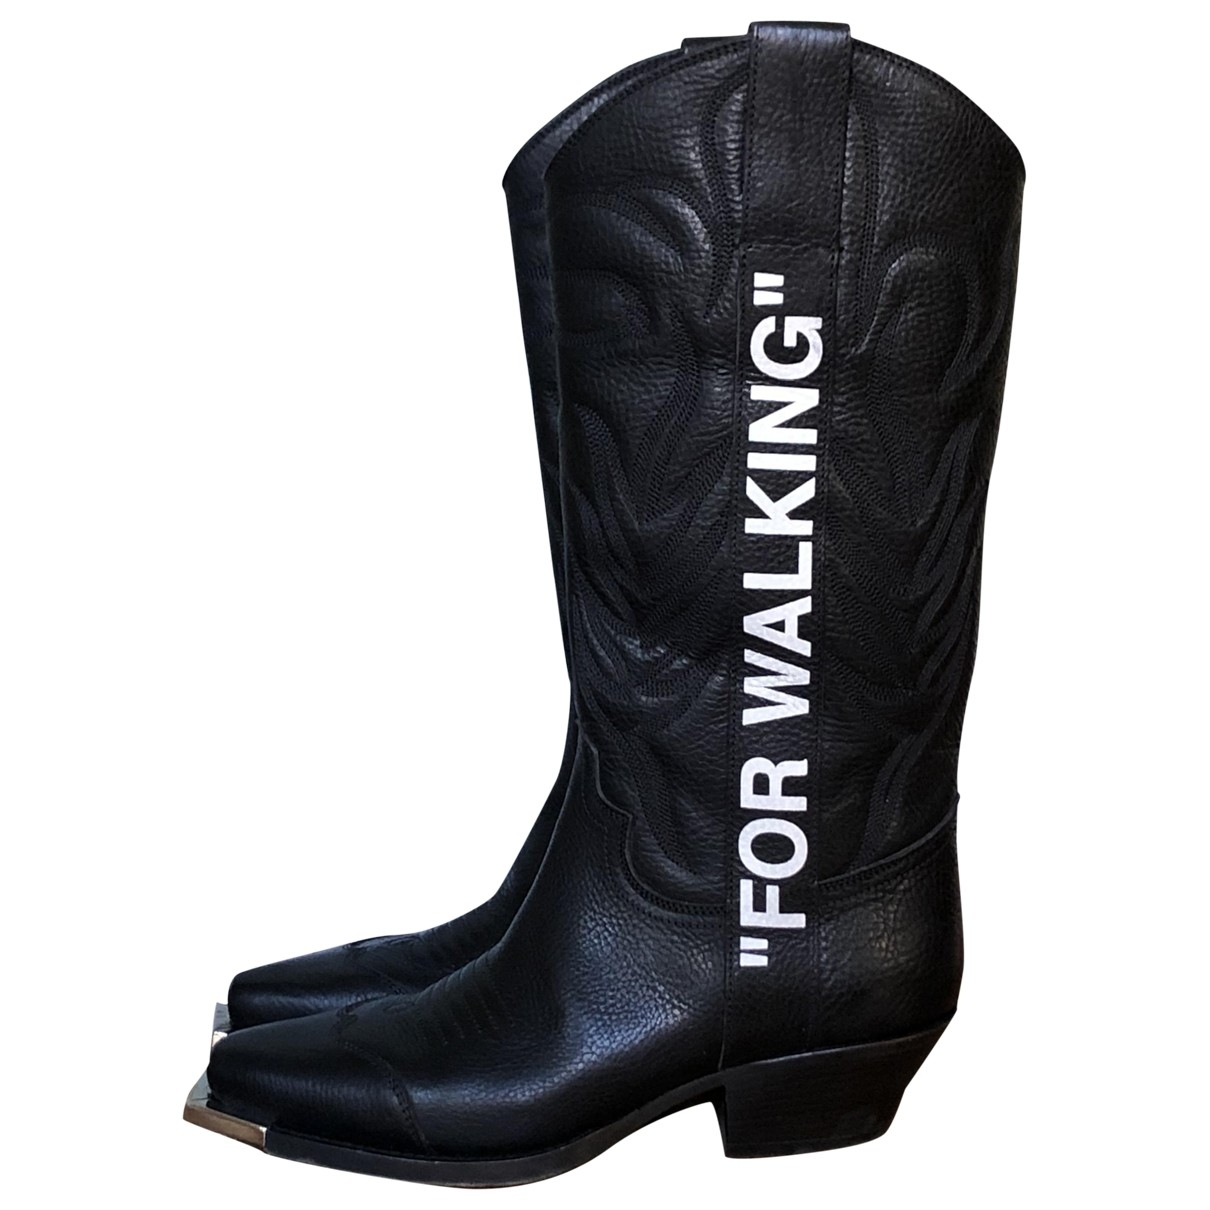 Off-white \N Black Leather Boots for Women 38 EU